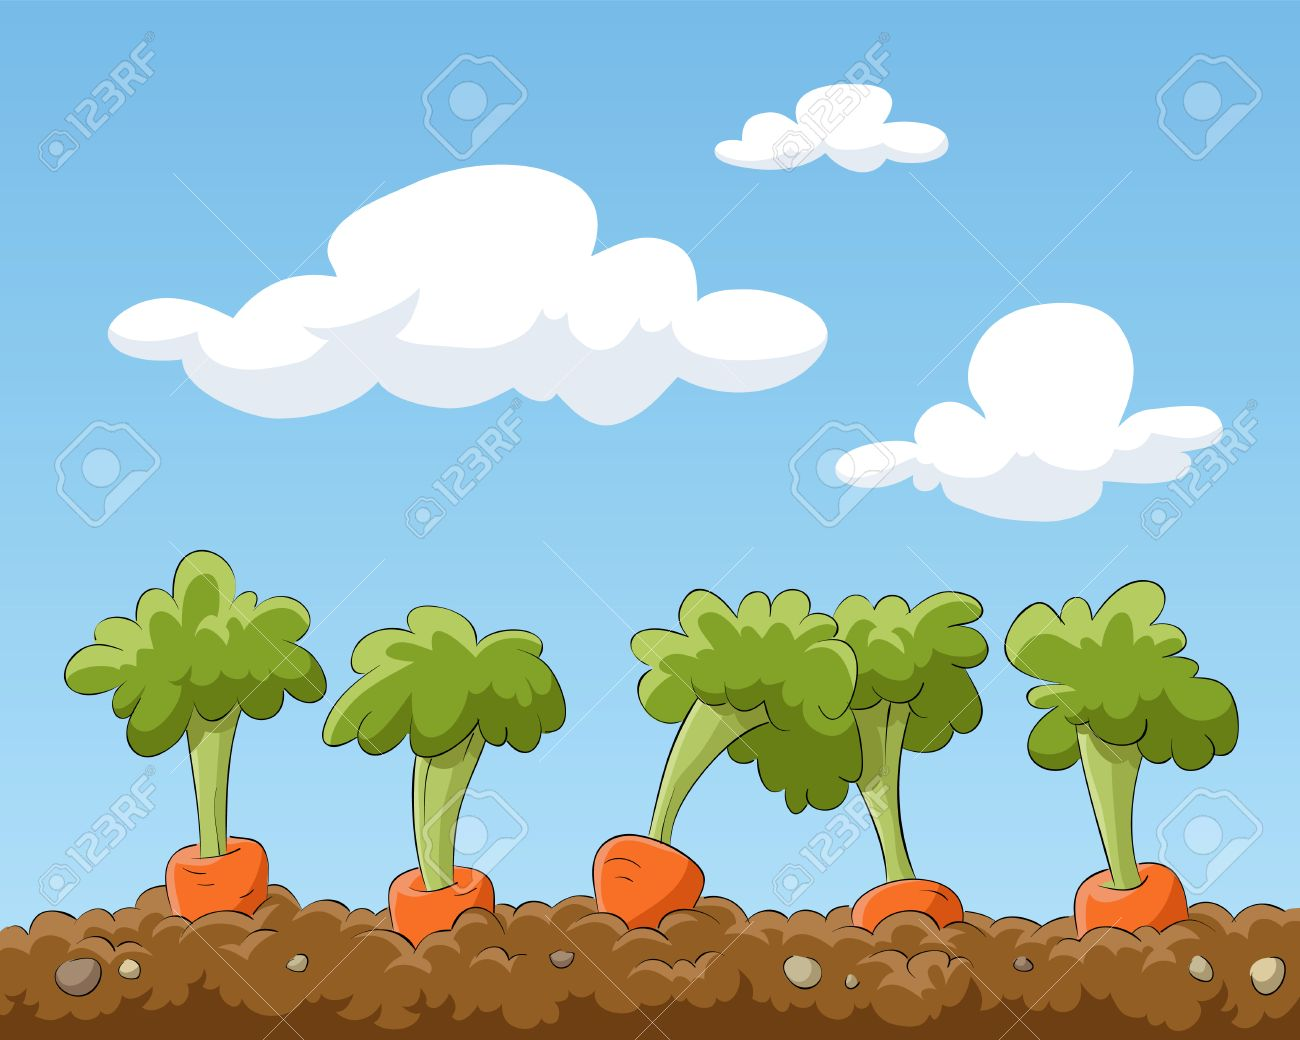 cartoon garden bed with carrots illustration royalty free cliparts